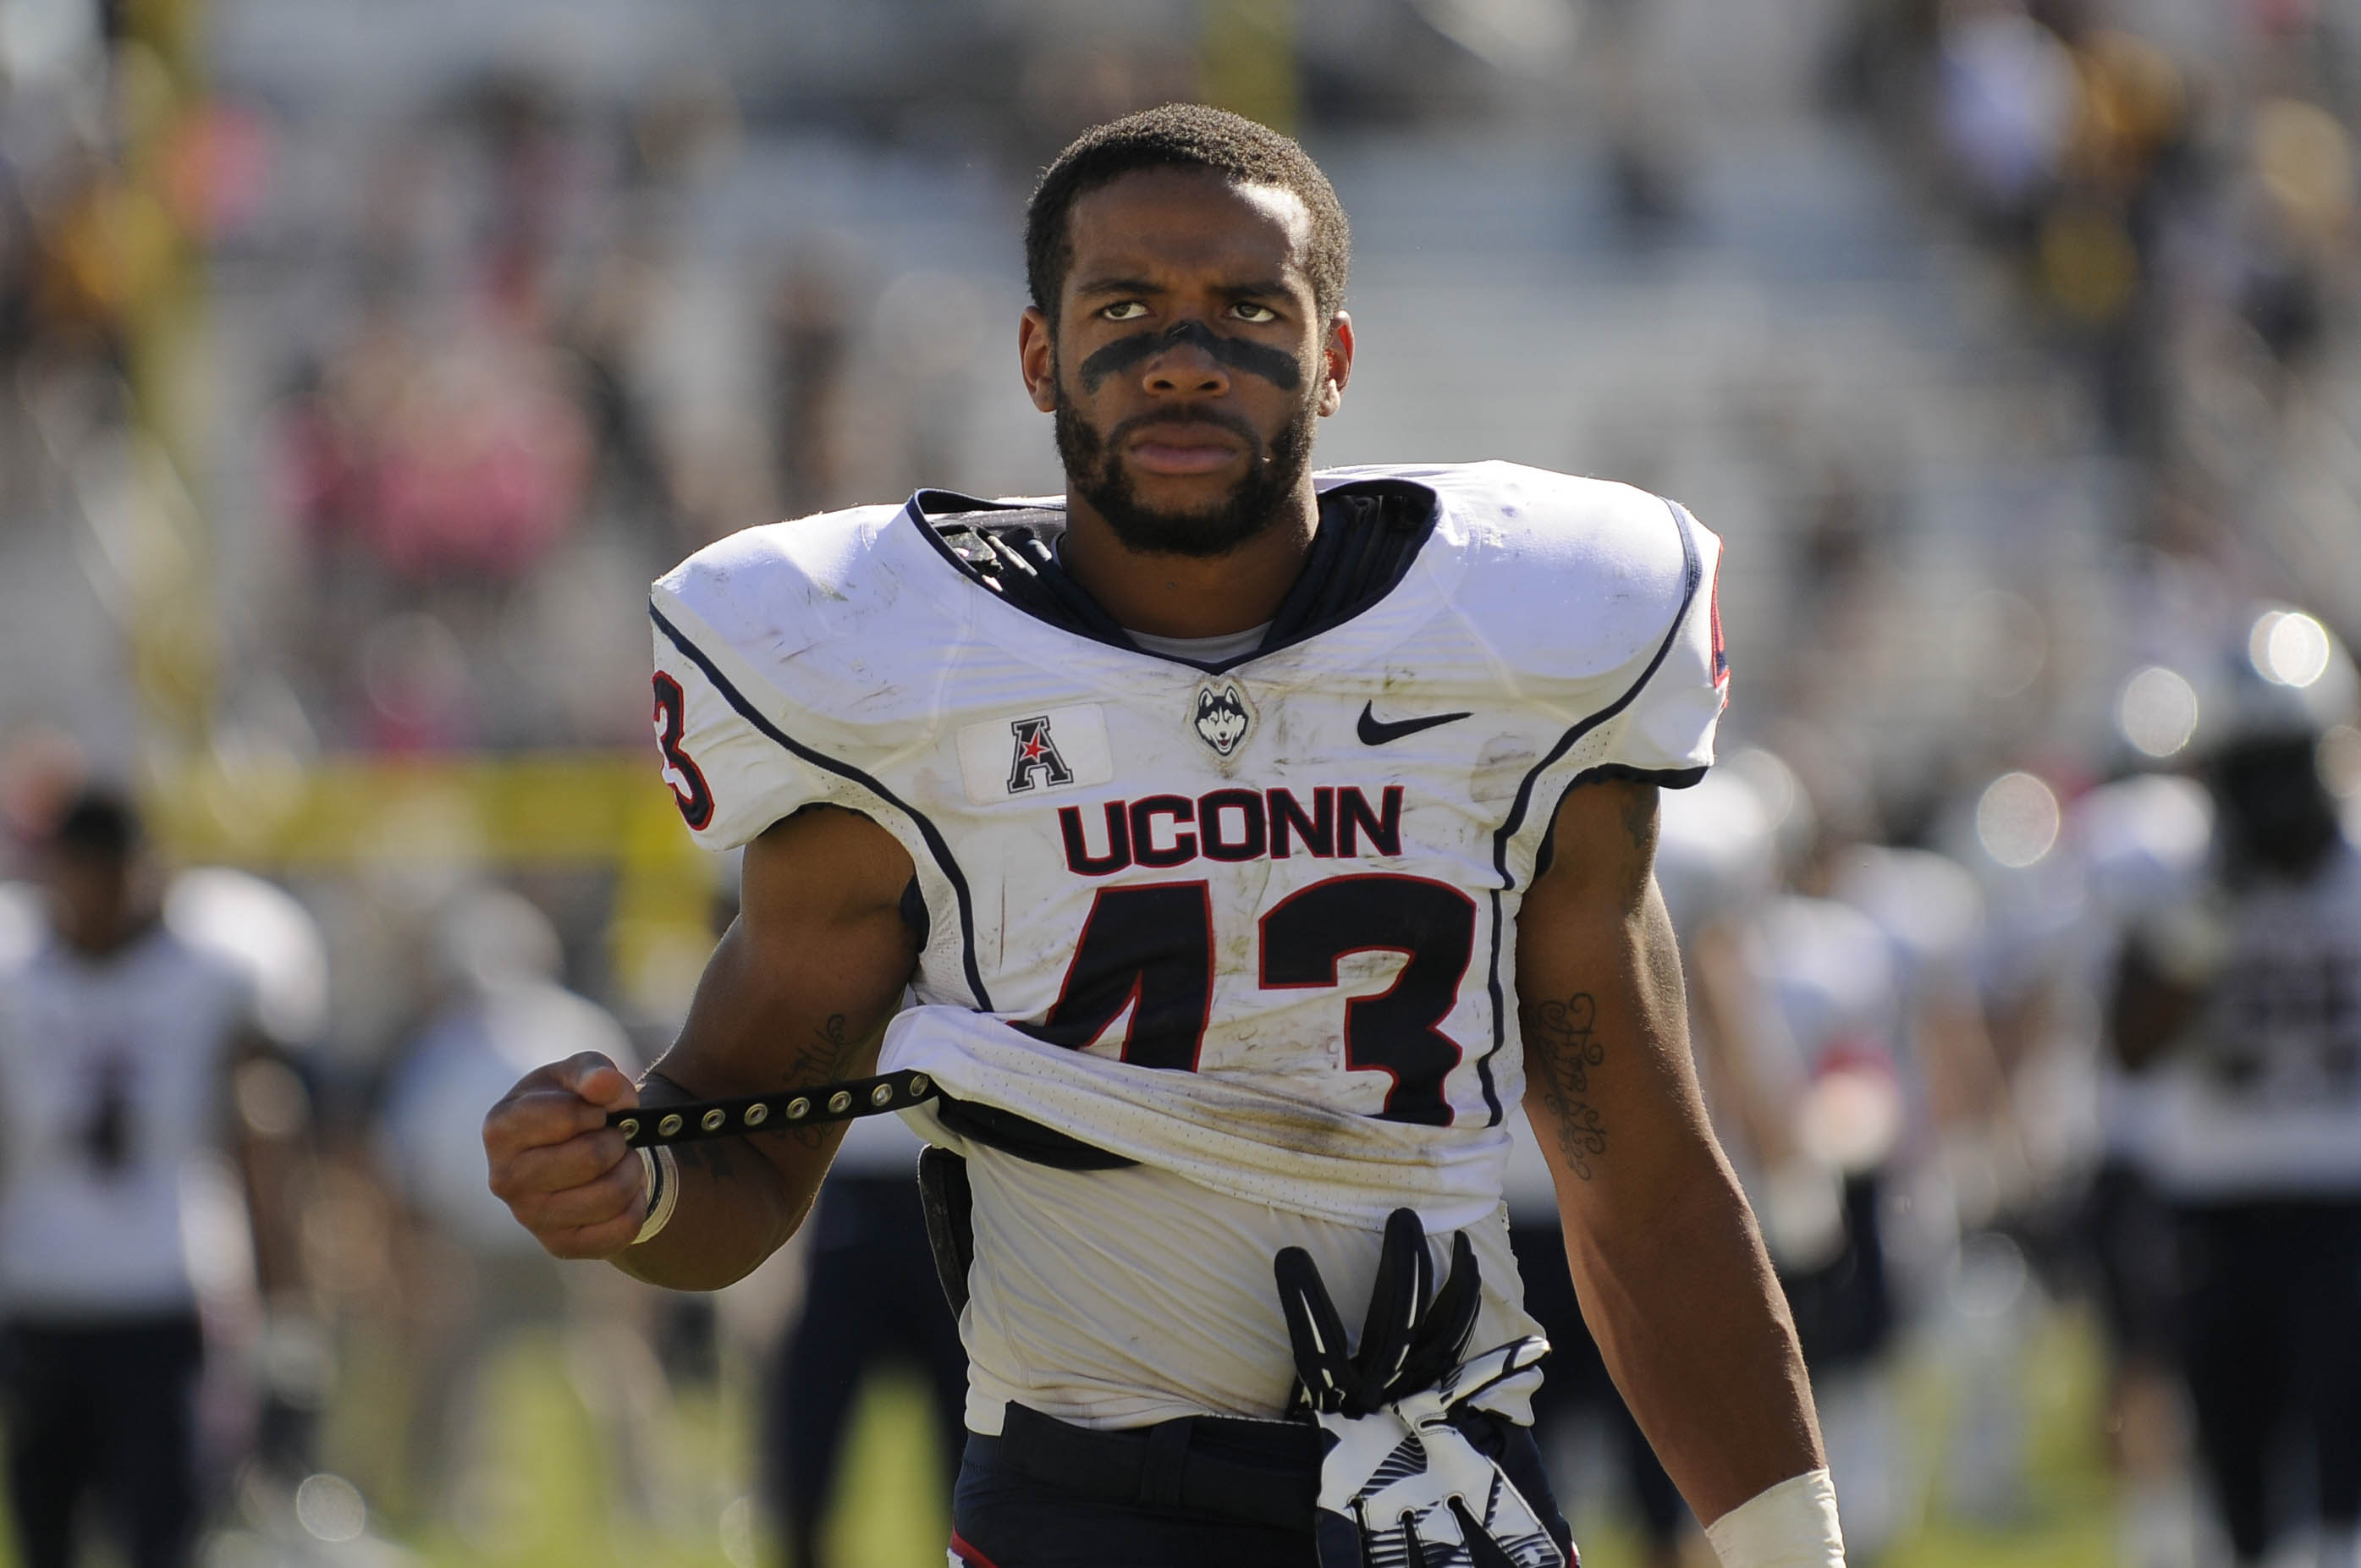 ORLANDO 10/26/13 UConn running back Lyle McCombs (43) looks grim as he leaves the field after UConn took a drubbing by UCF at Bright House Networks Stadium, losing 62-17 Saturday. CLOE POISSON|cpoisson@courant.com